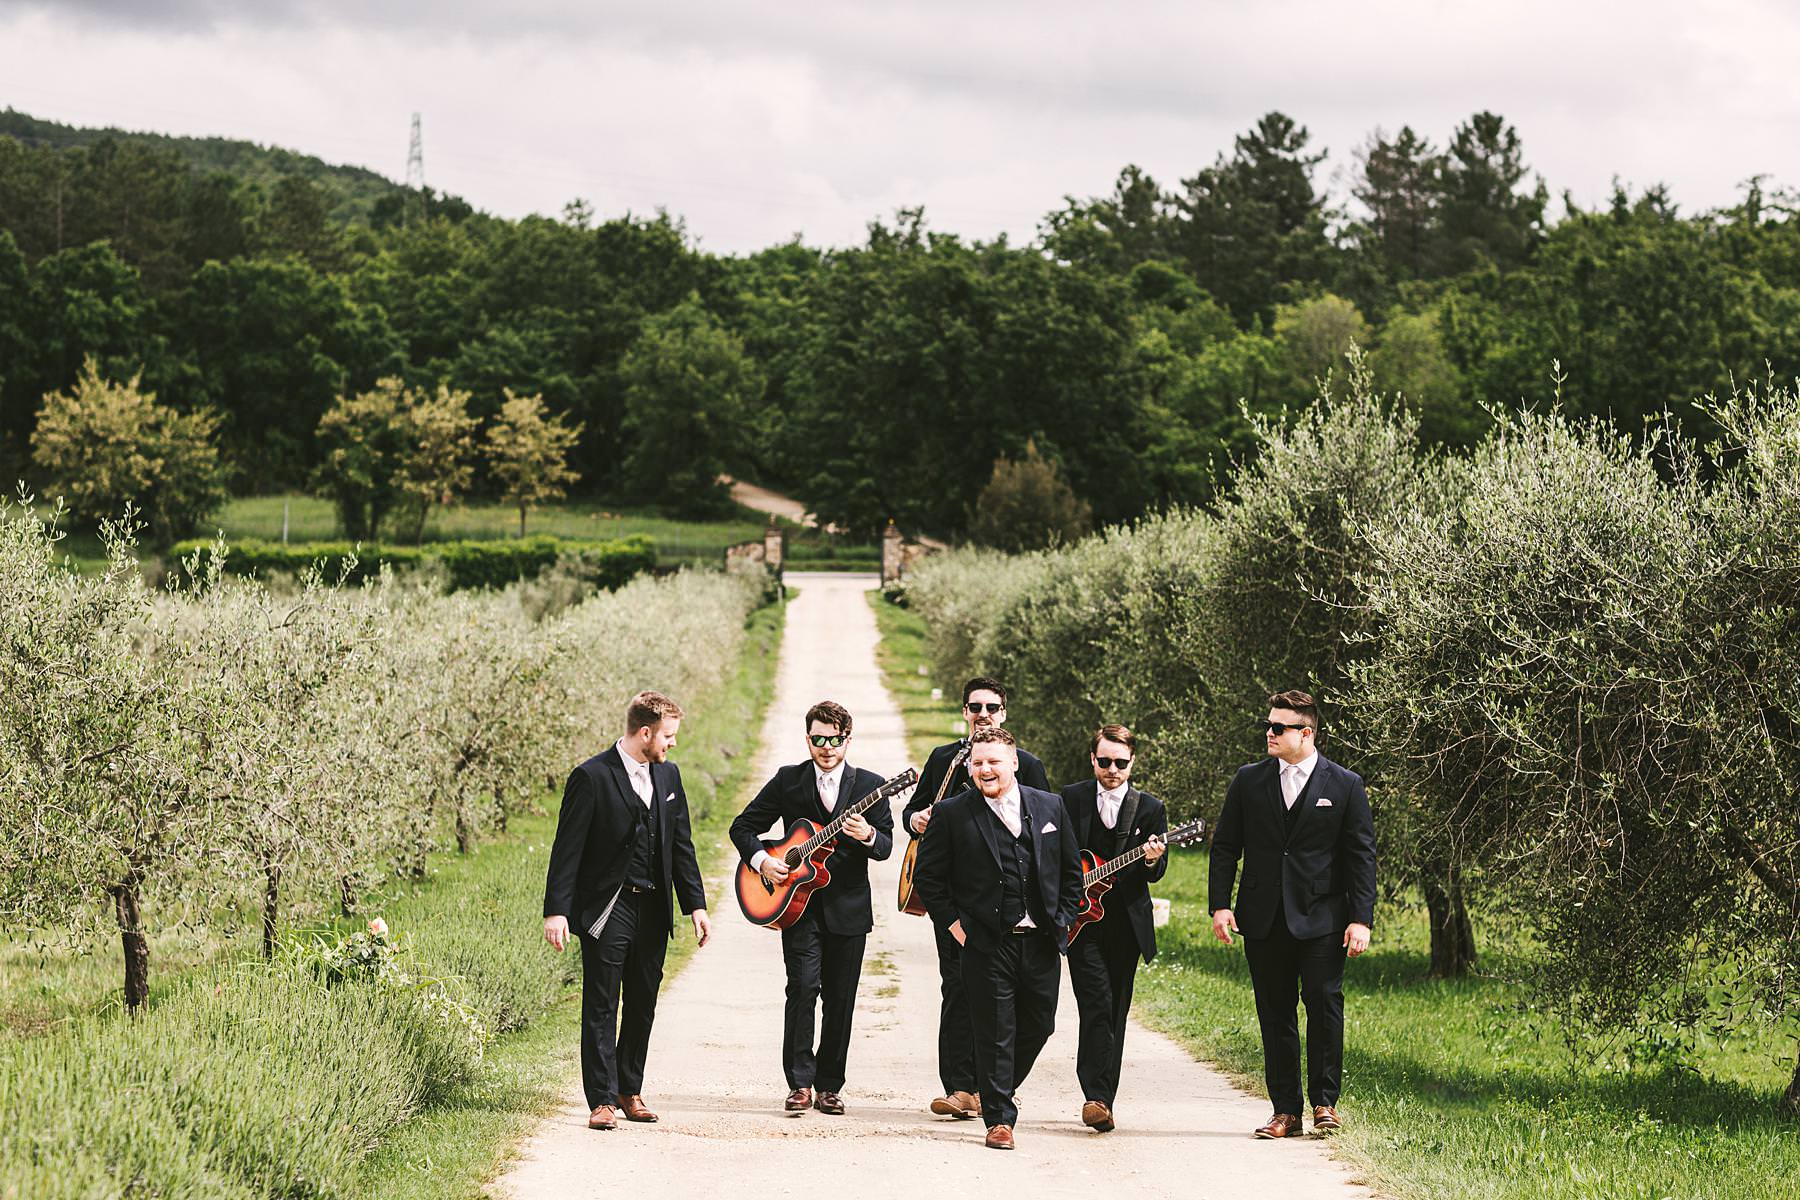 Groom and mens just ready for the outdoor intimate destination wedding ceremony in Tuscany countryside venue of Villa Le Bolli near Radicondoli